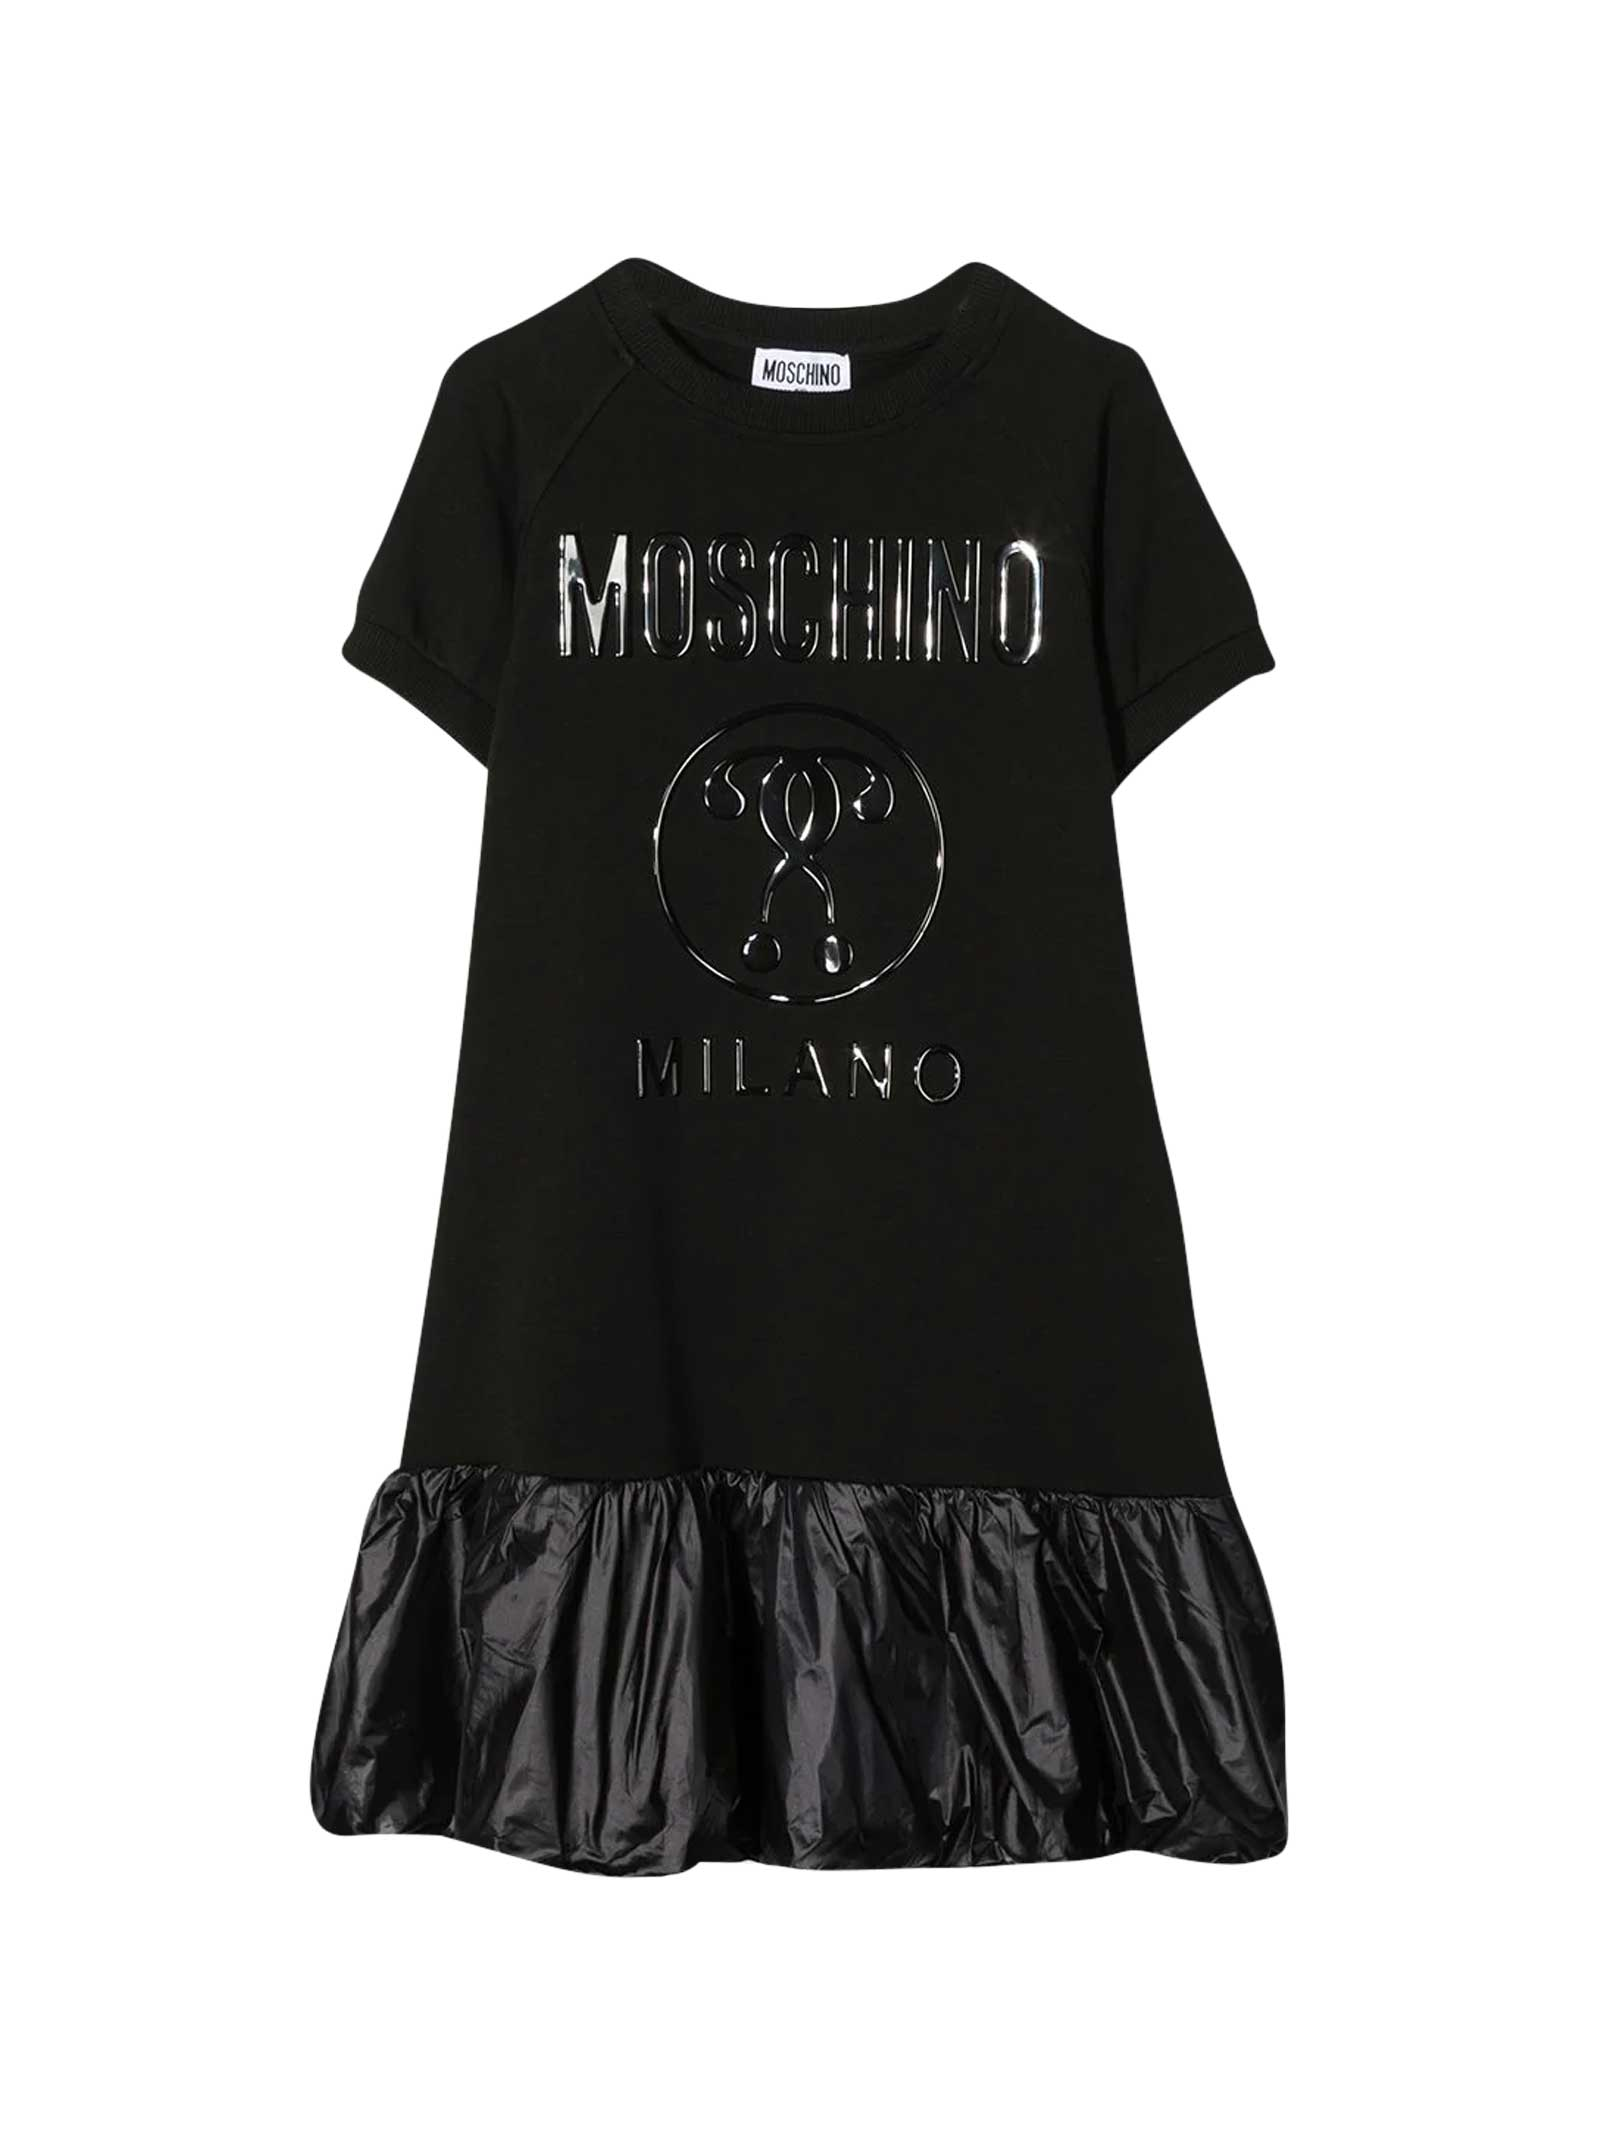 Moschino Black Dress With Frontal Logo